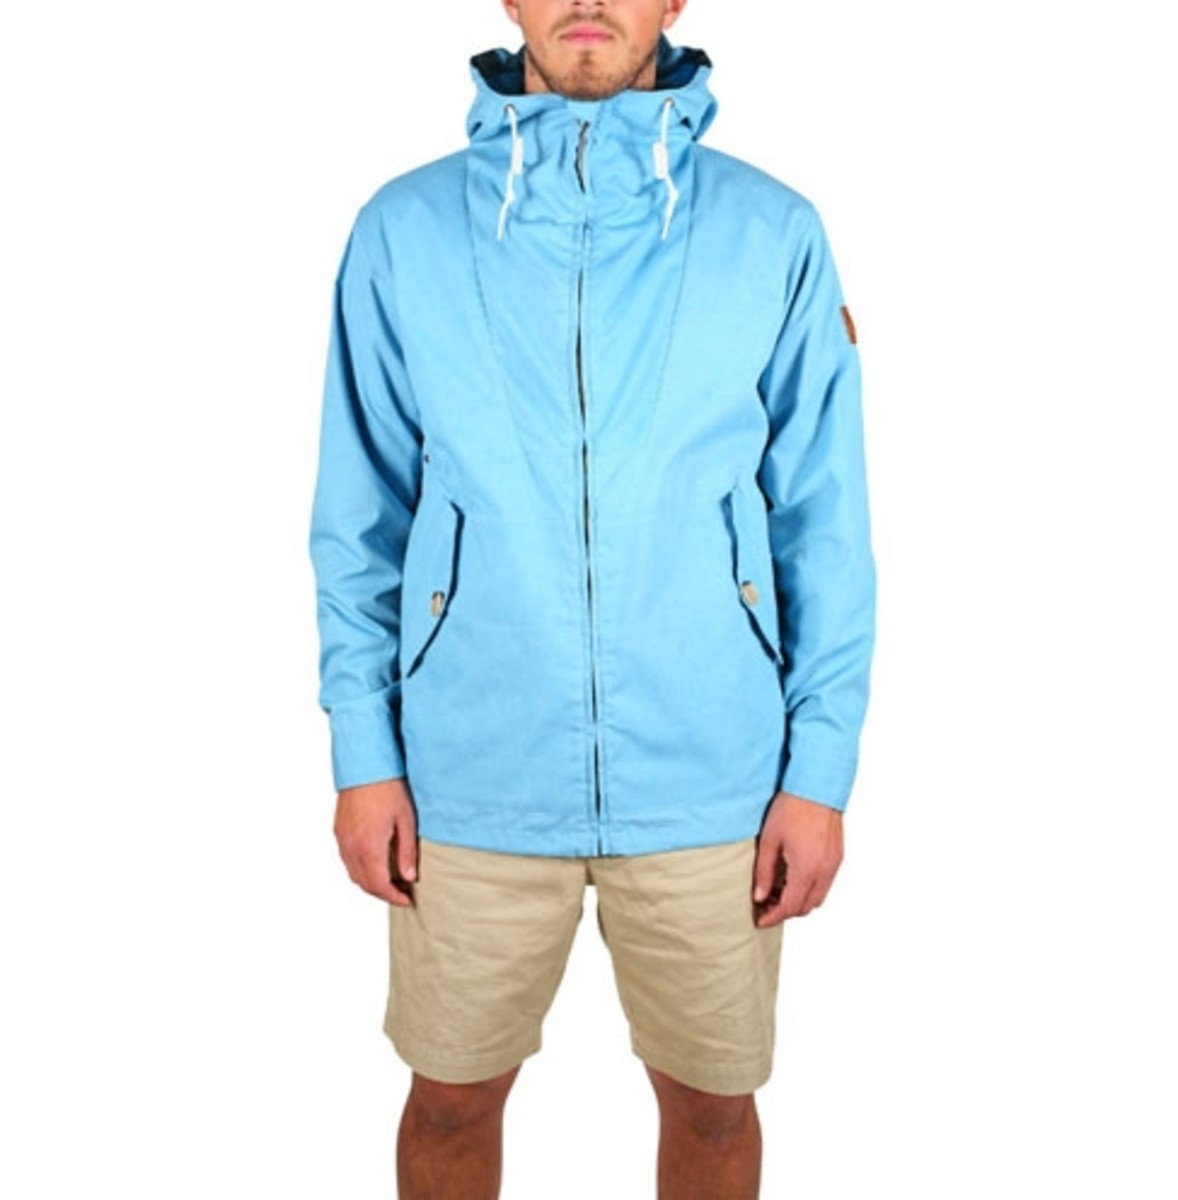 Penfield SS2011 Jackets 34